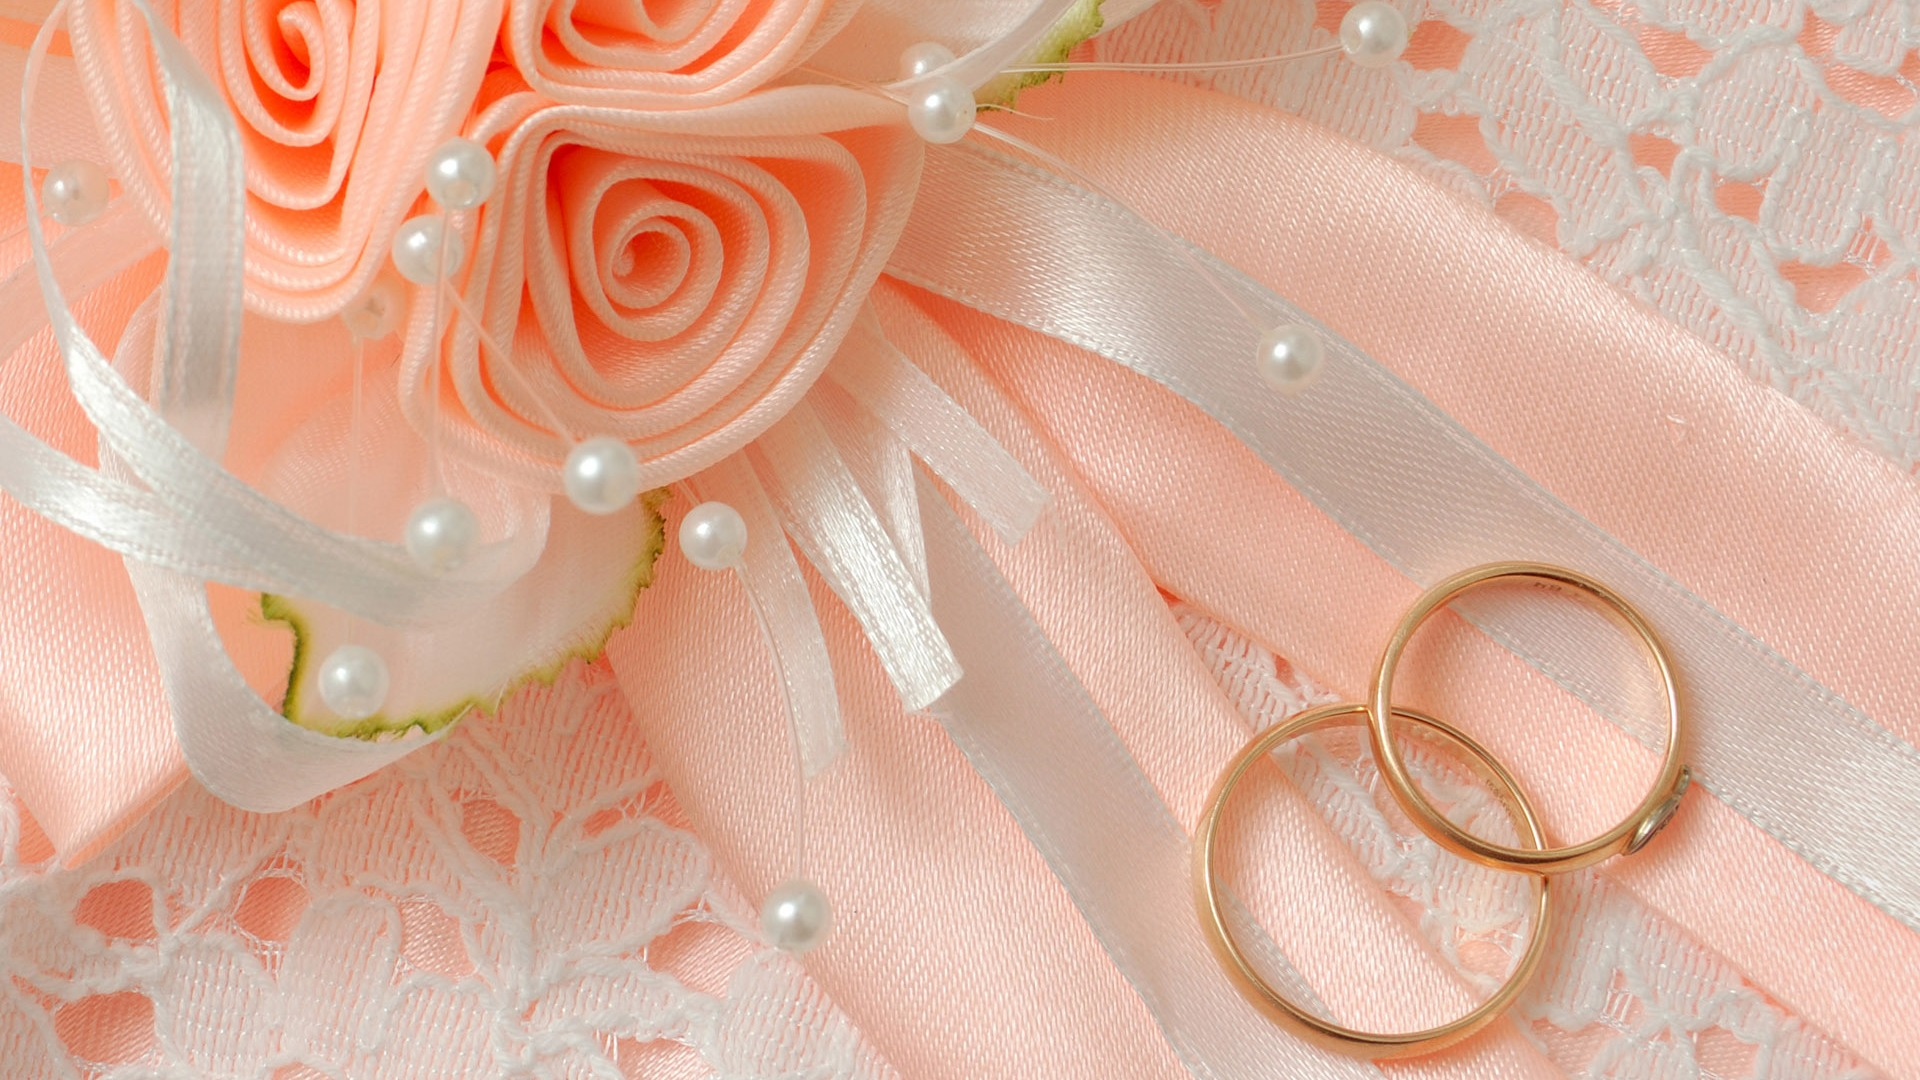 Weddings and wedding ring wallpaper 2 7 1920x1080 Wallpaper